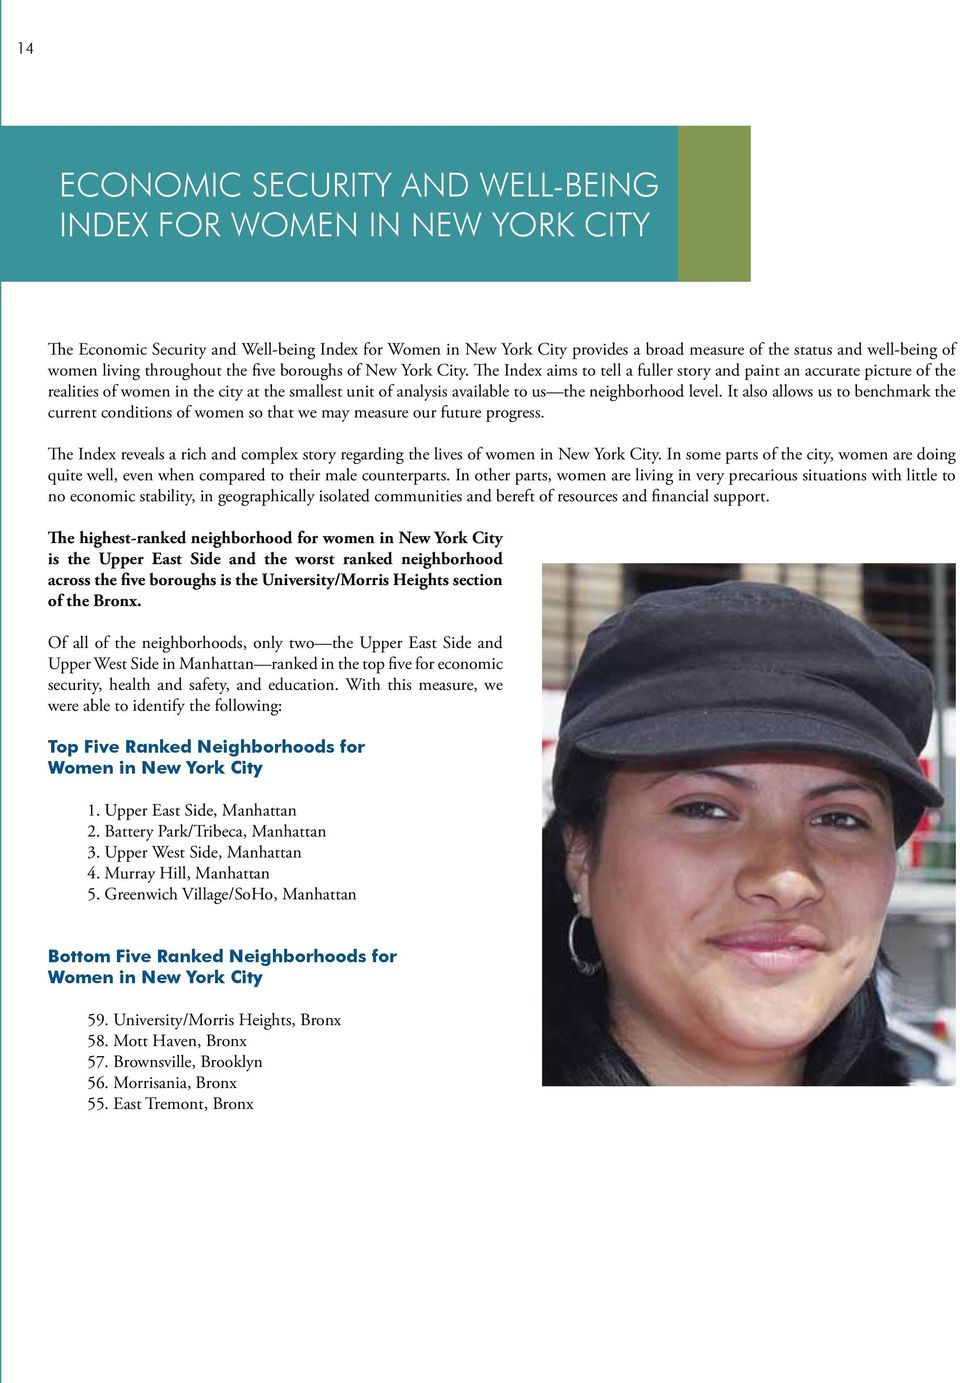 The Index aims to tell a fuller story and paint an accurate picture of the realities of women in the city at the smallest unit of analysis available to us the neighborhood level.